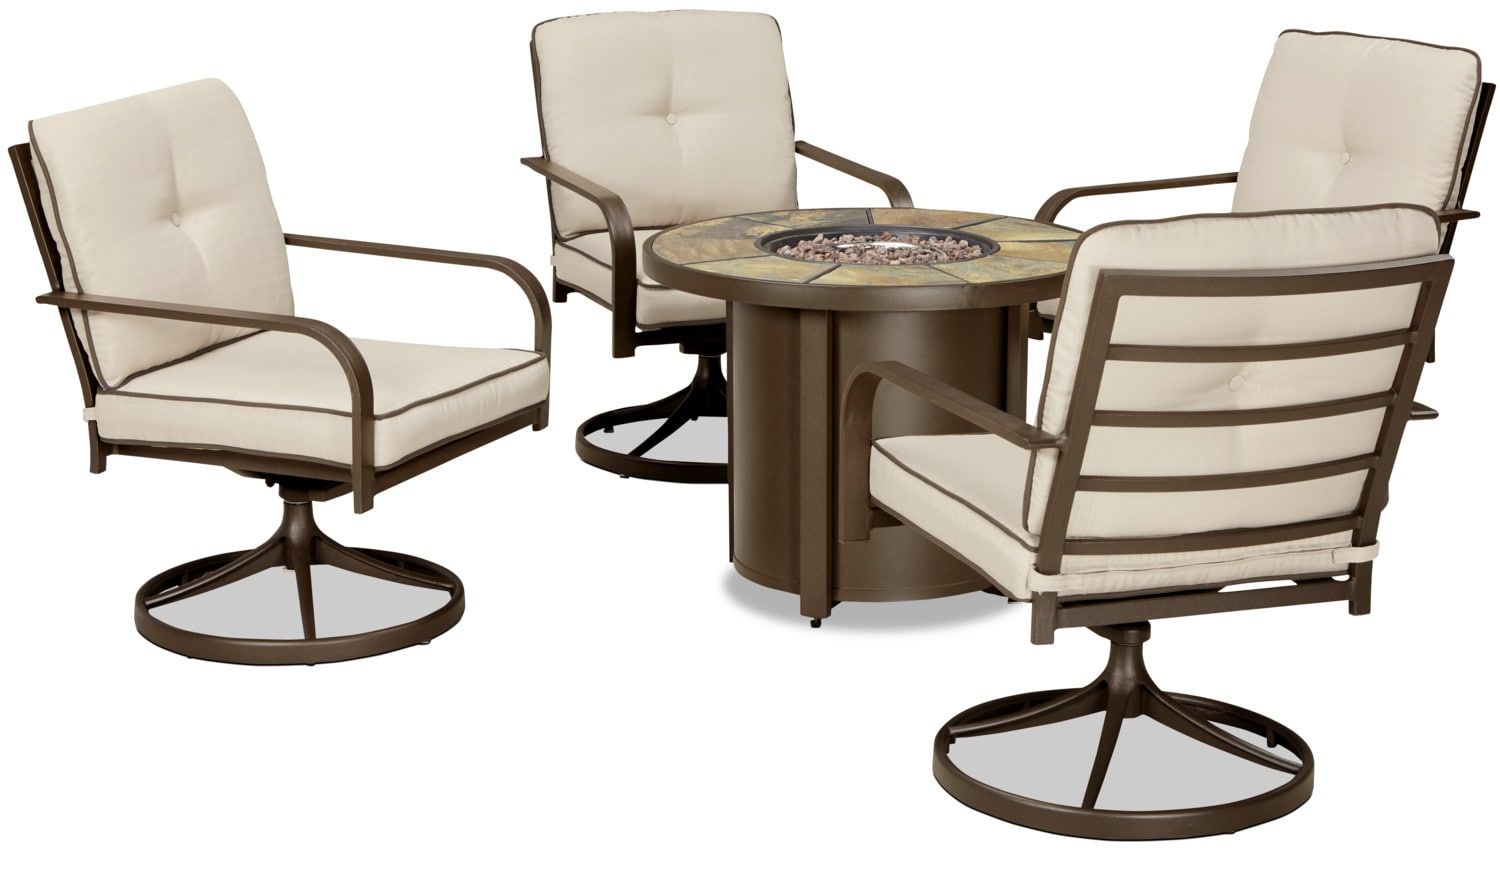 Predmore 5-Piece Patio Set with Fire Table